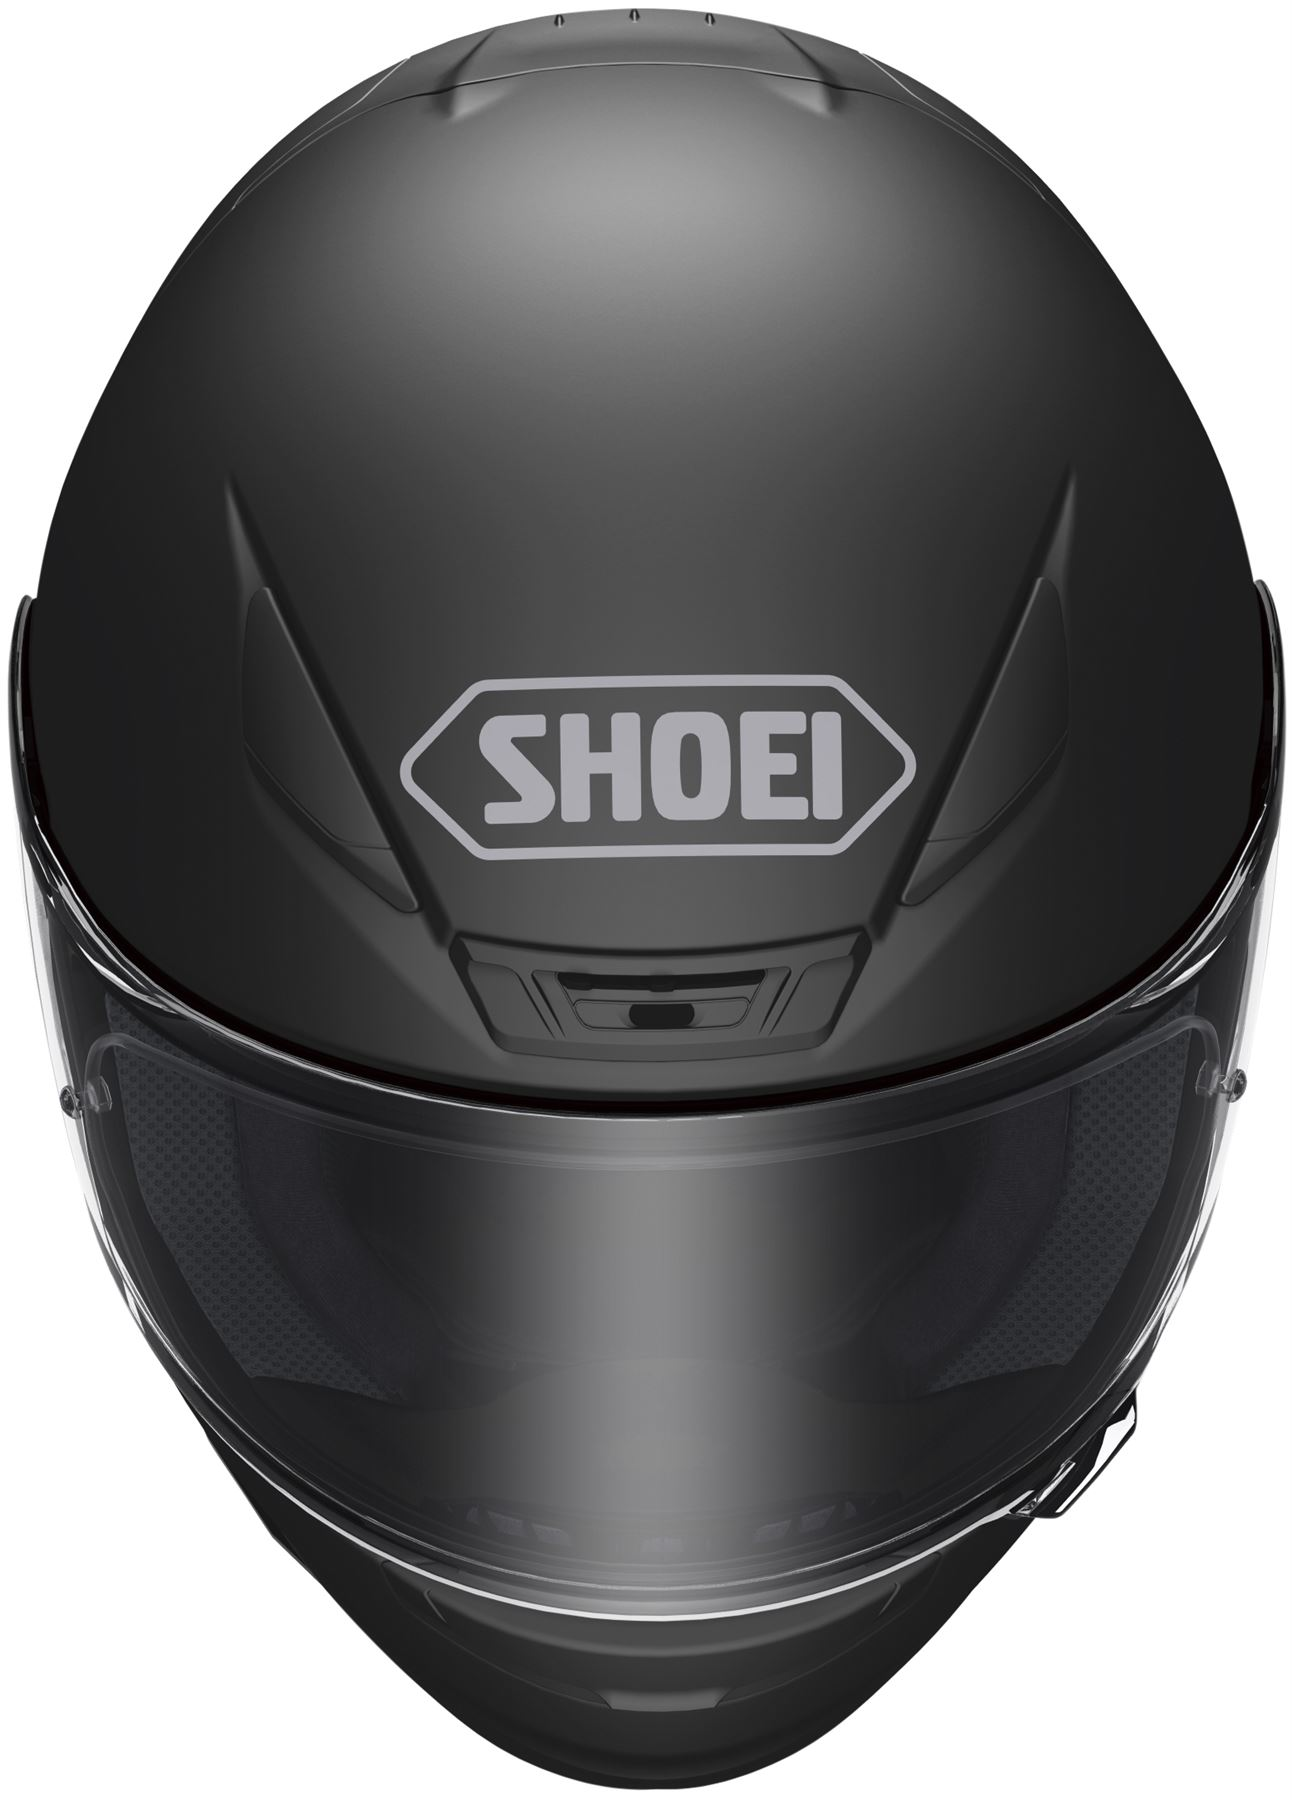 miniature 6 - Shoei RF-1200 Helmet Noise Reduction Lightweight DOT SNELL M2015 XS-2XL